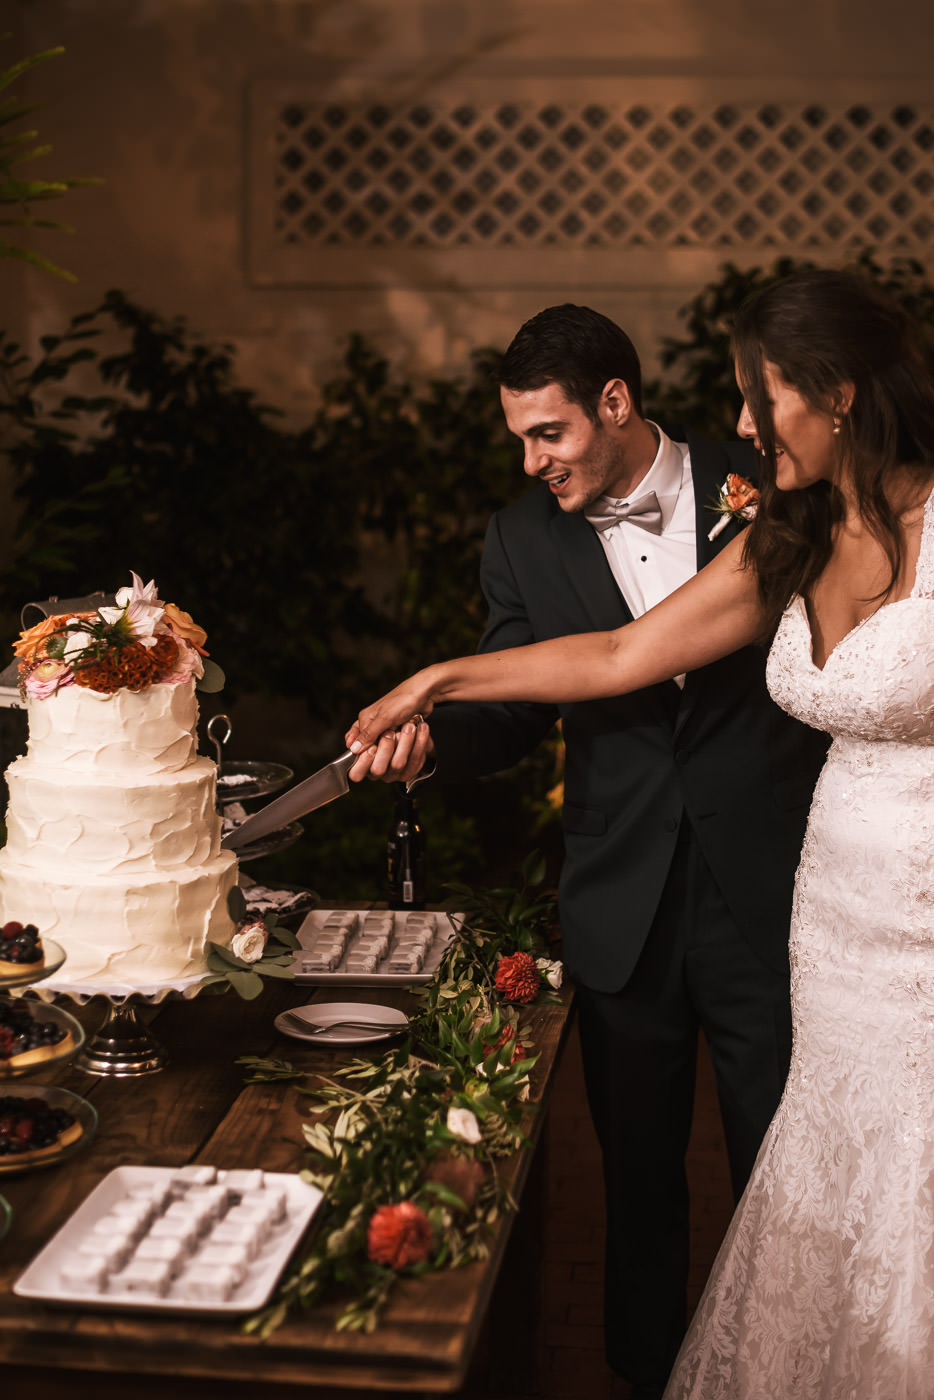 Couple cuts their wedding cake at the reception.